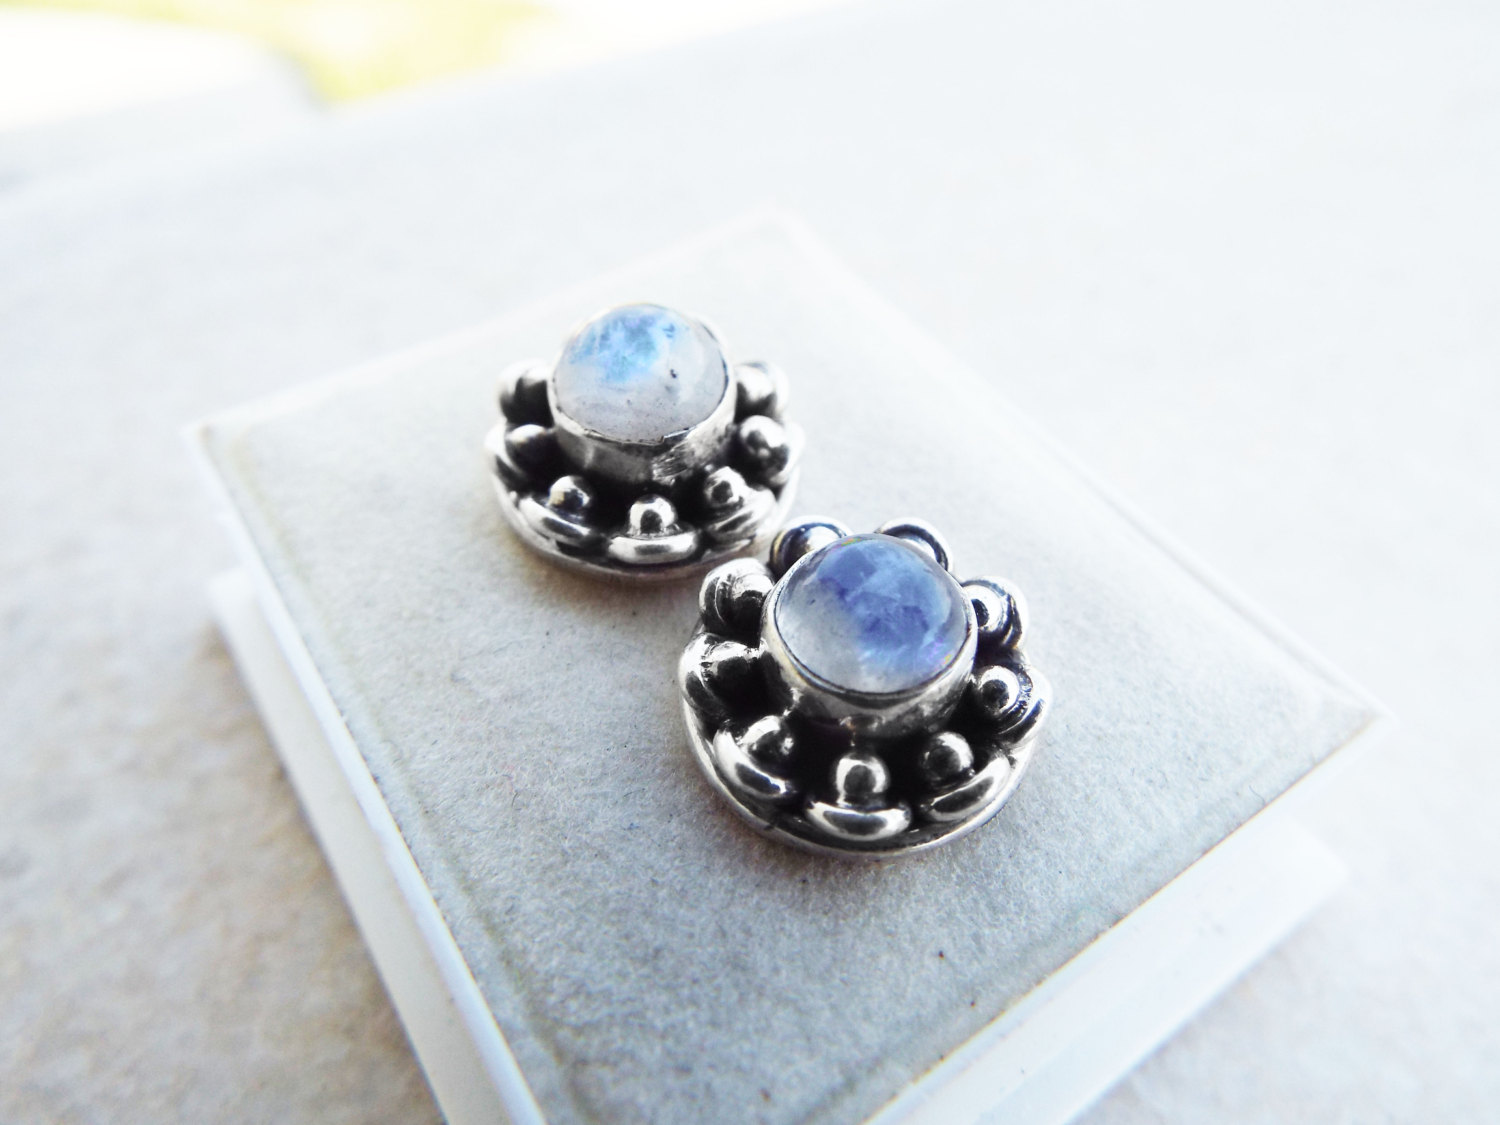 Moonstone Earrings Studs Gemstone Stone Handmade Silver Gothic Dark Sterling 925 Jewelry